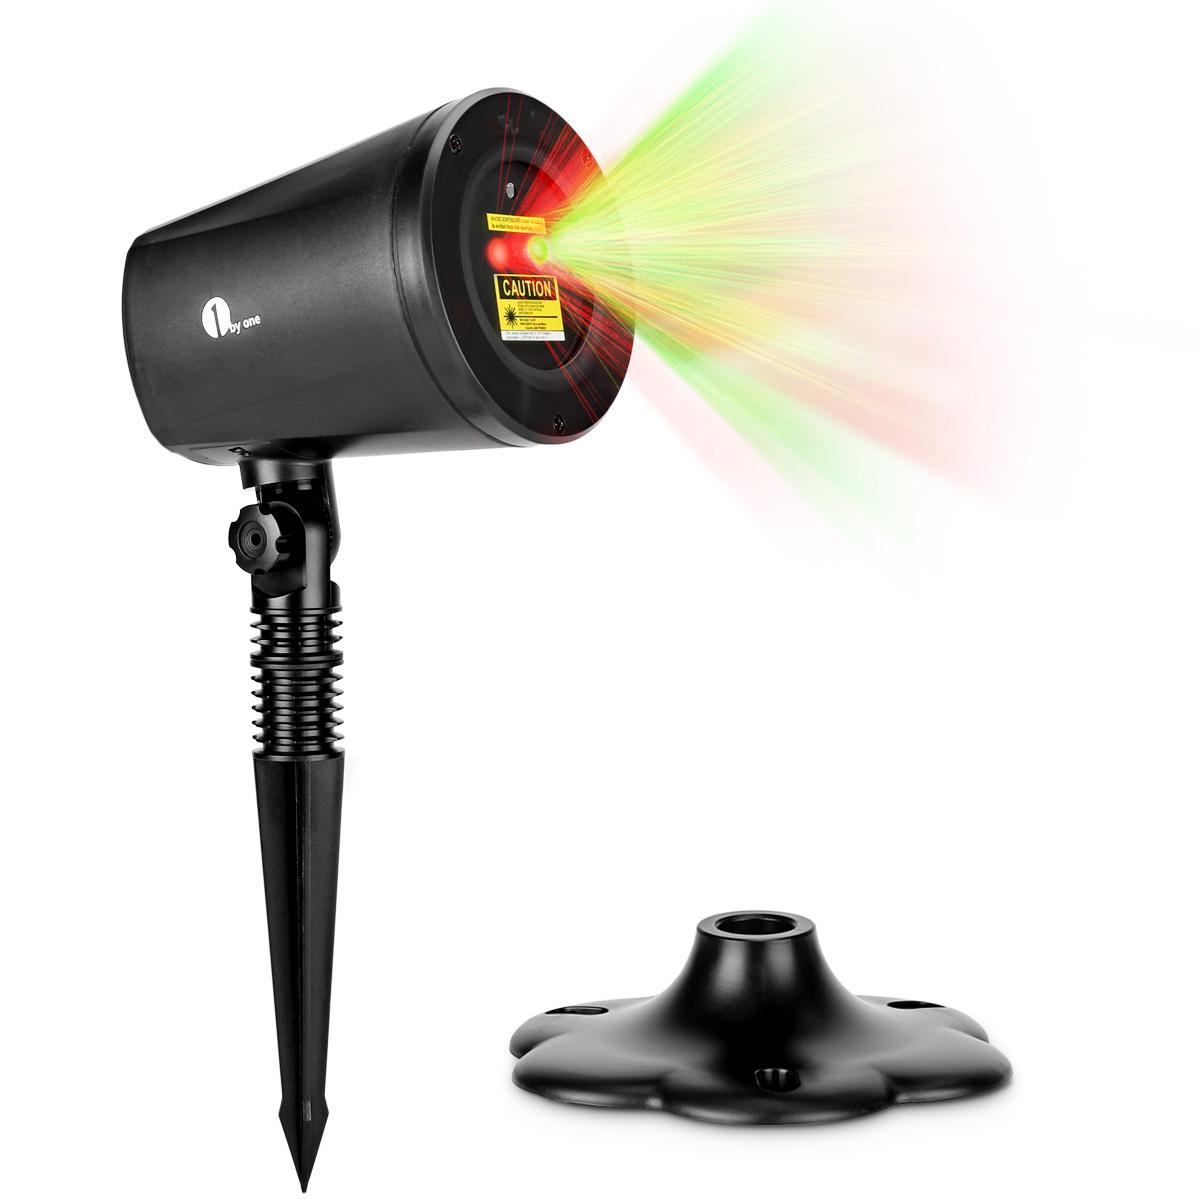 Patio Lights Amazon Ca: 1byone Magic Outdoor And Indoor Christmas Laser Light